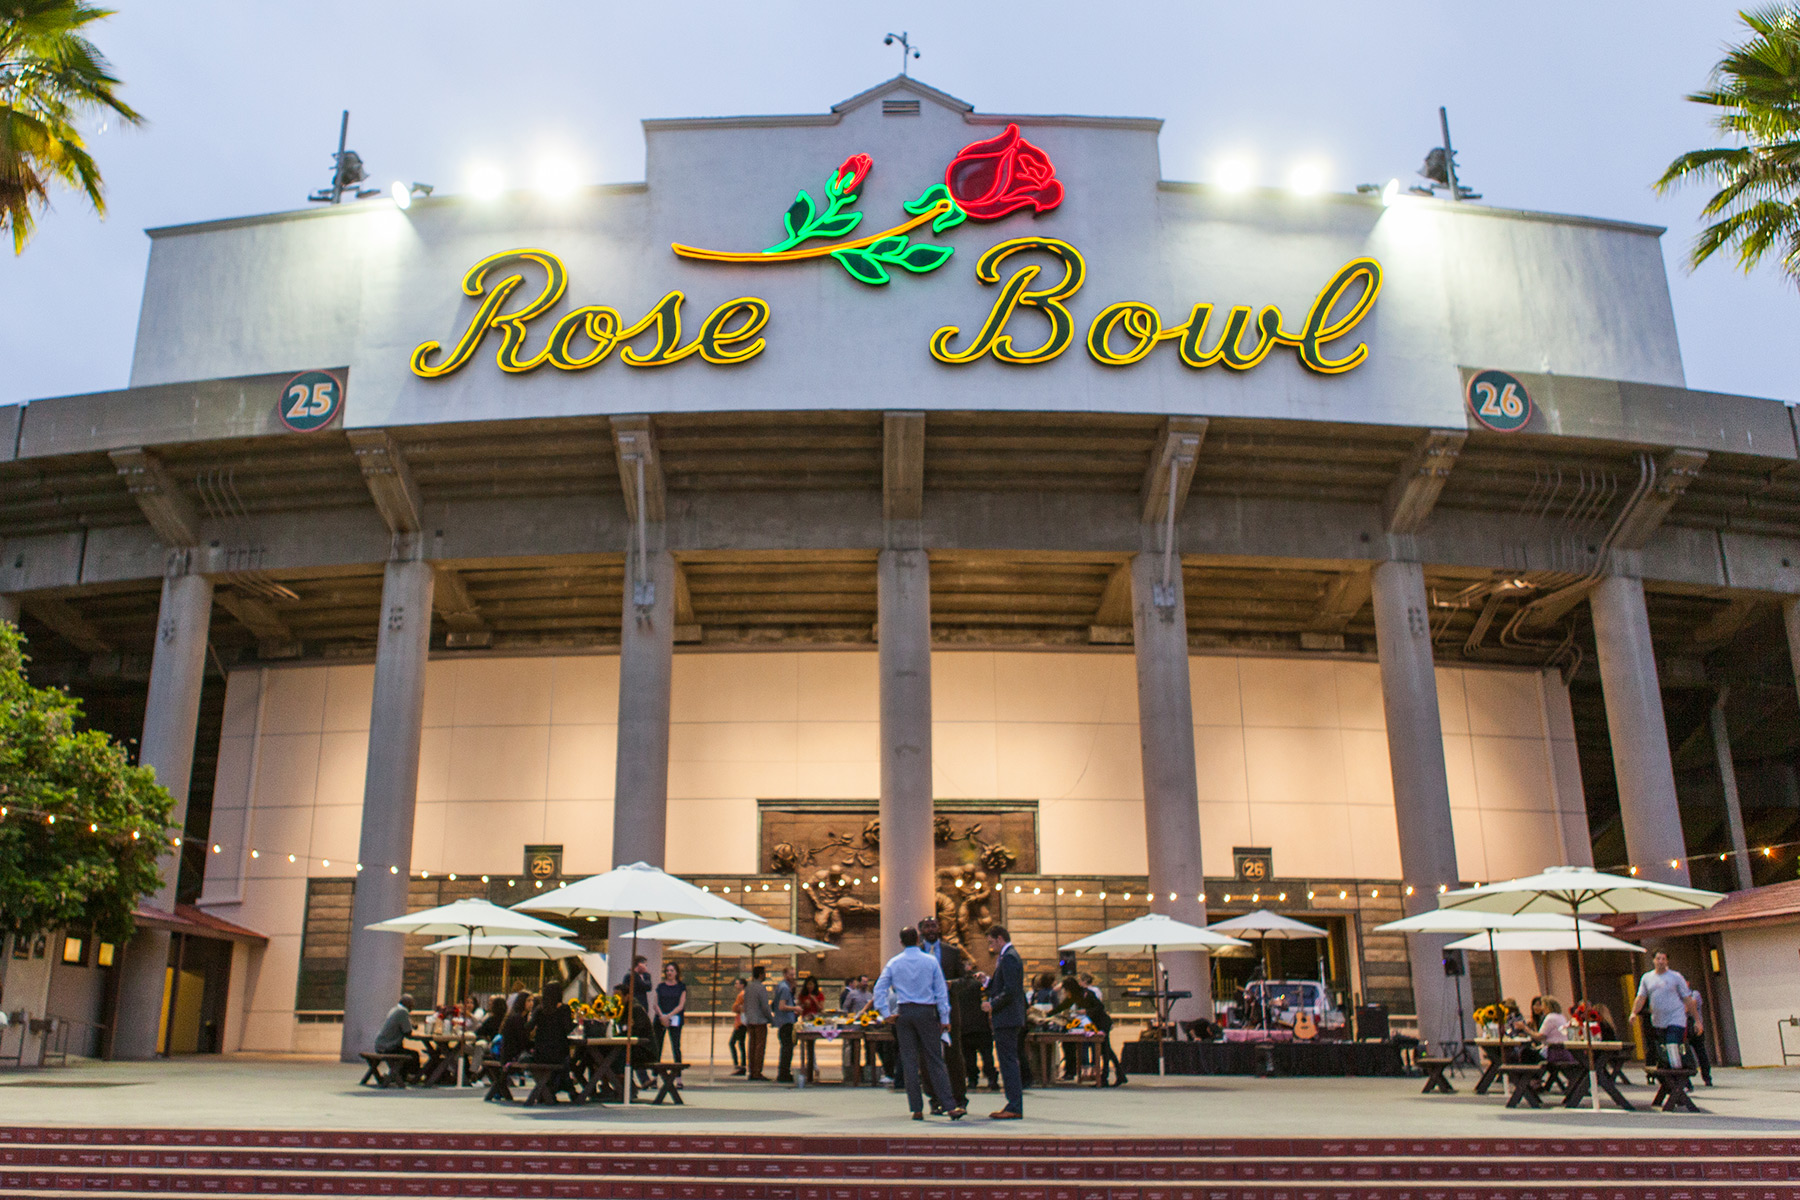 Wolfgang Puck Catering and Events at Rose Bowl Stadium